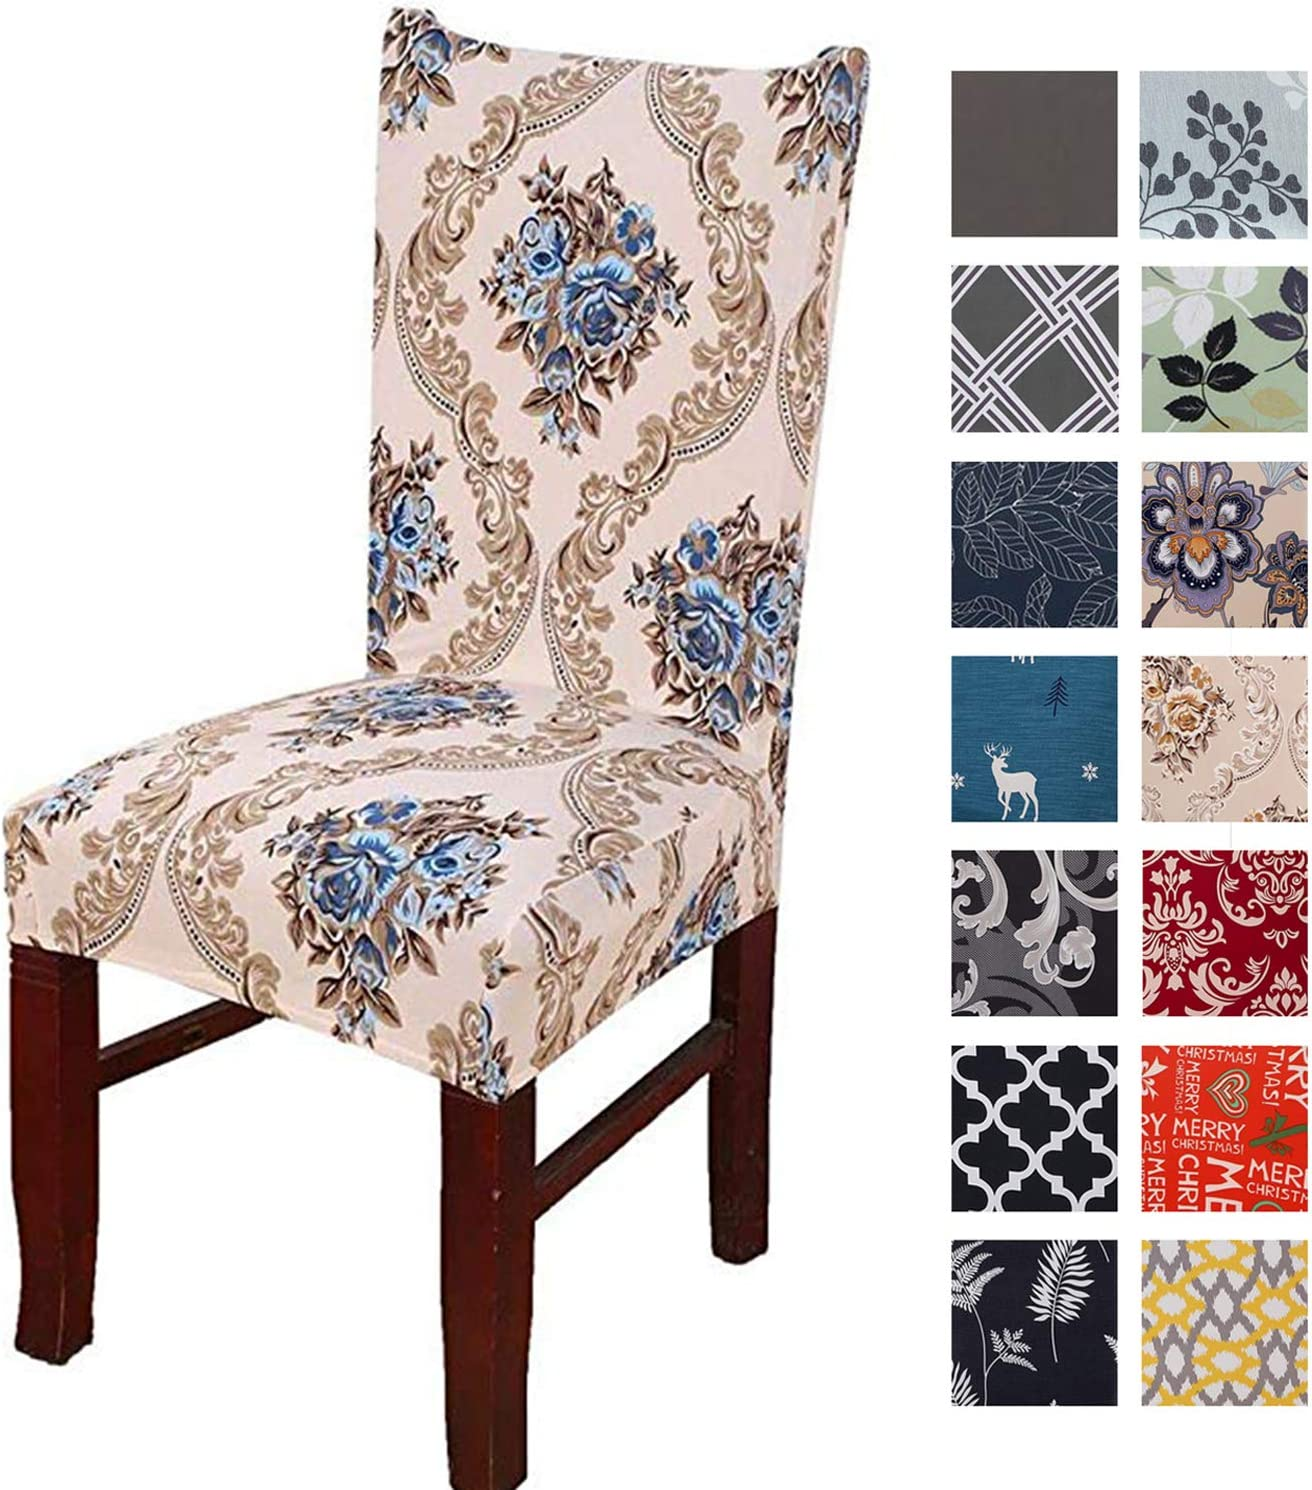 Printed Dining Chair Slipcovers, Removable Washable Soft Spandex Stretch Chair Covers Banquet Chair Seat Protector Slipcover for Kitchen Home Hotel (Set of 4, Brown)